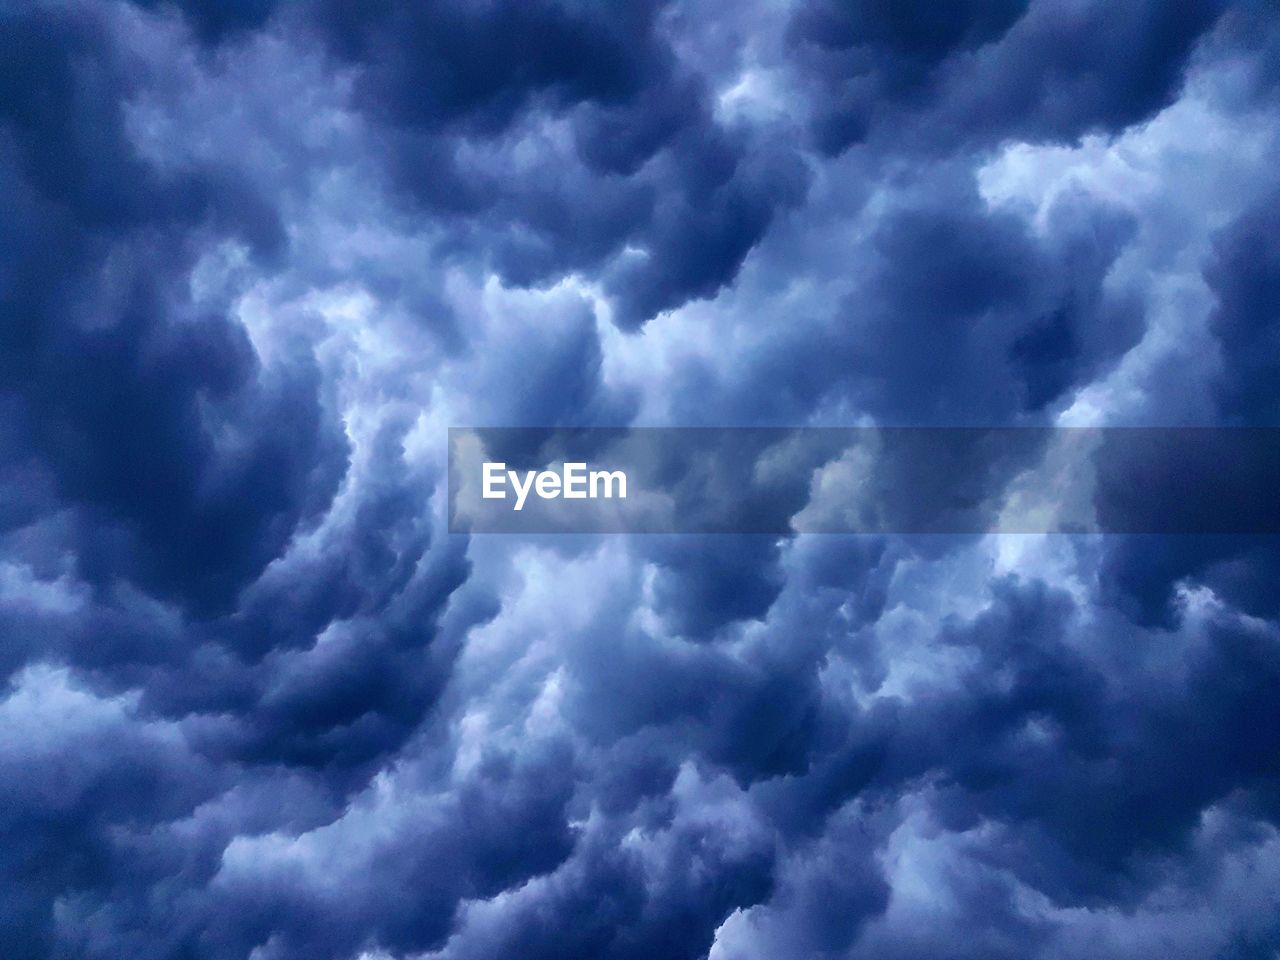 cloud - sky, sky, beauty in nature, scenics - nature, low angle view, nature, no people, backgrounds, cloudscape, tranquility, day, storm, overcast, outdoors, dramatic sky, full frame, tranquil scene, blue, white color, meteorology